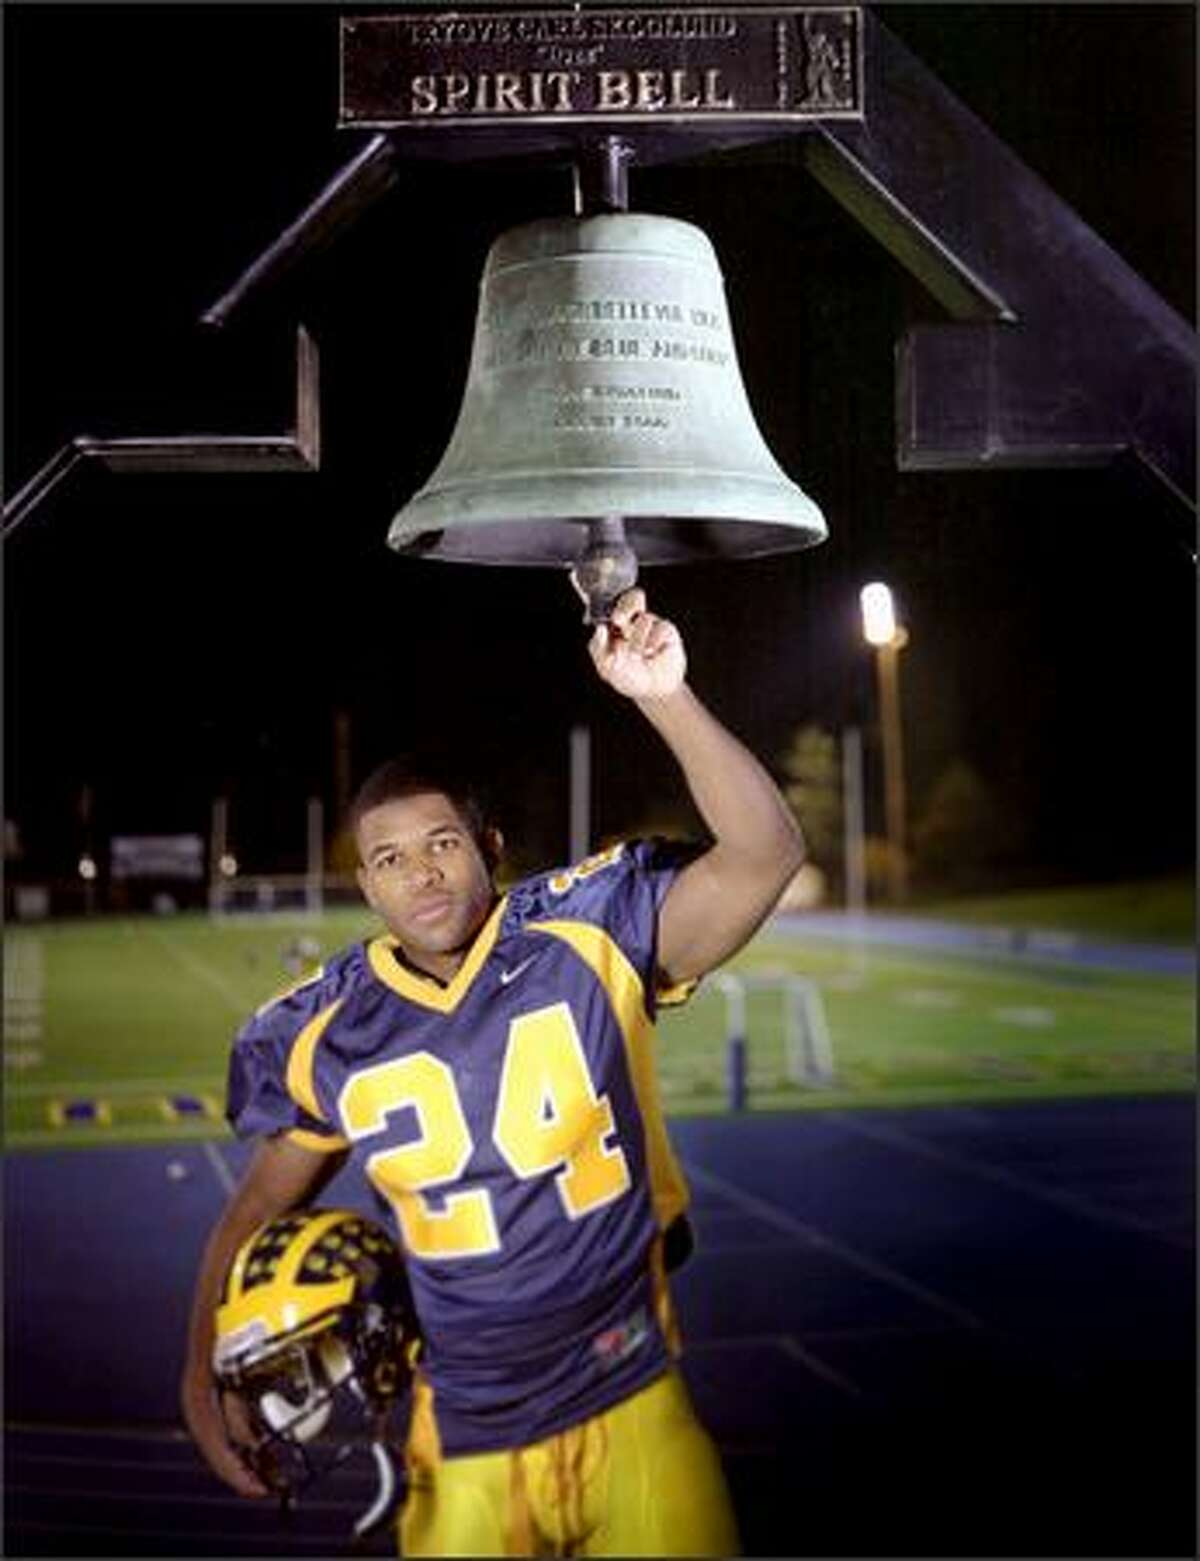 Football (offense) most valuable athlete J.R. Hasty of Bellevue, photographed at Bellevue High School with the school's Spirit Bell. 5,493. The 5-foot-10, 200-pound senior running back had the fifth-best single-season yardage total in state history with 2,519 and a state-record 50 touchdowns, 19 on plays of more than 25 yards.